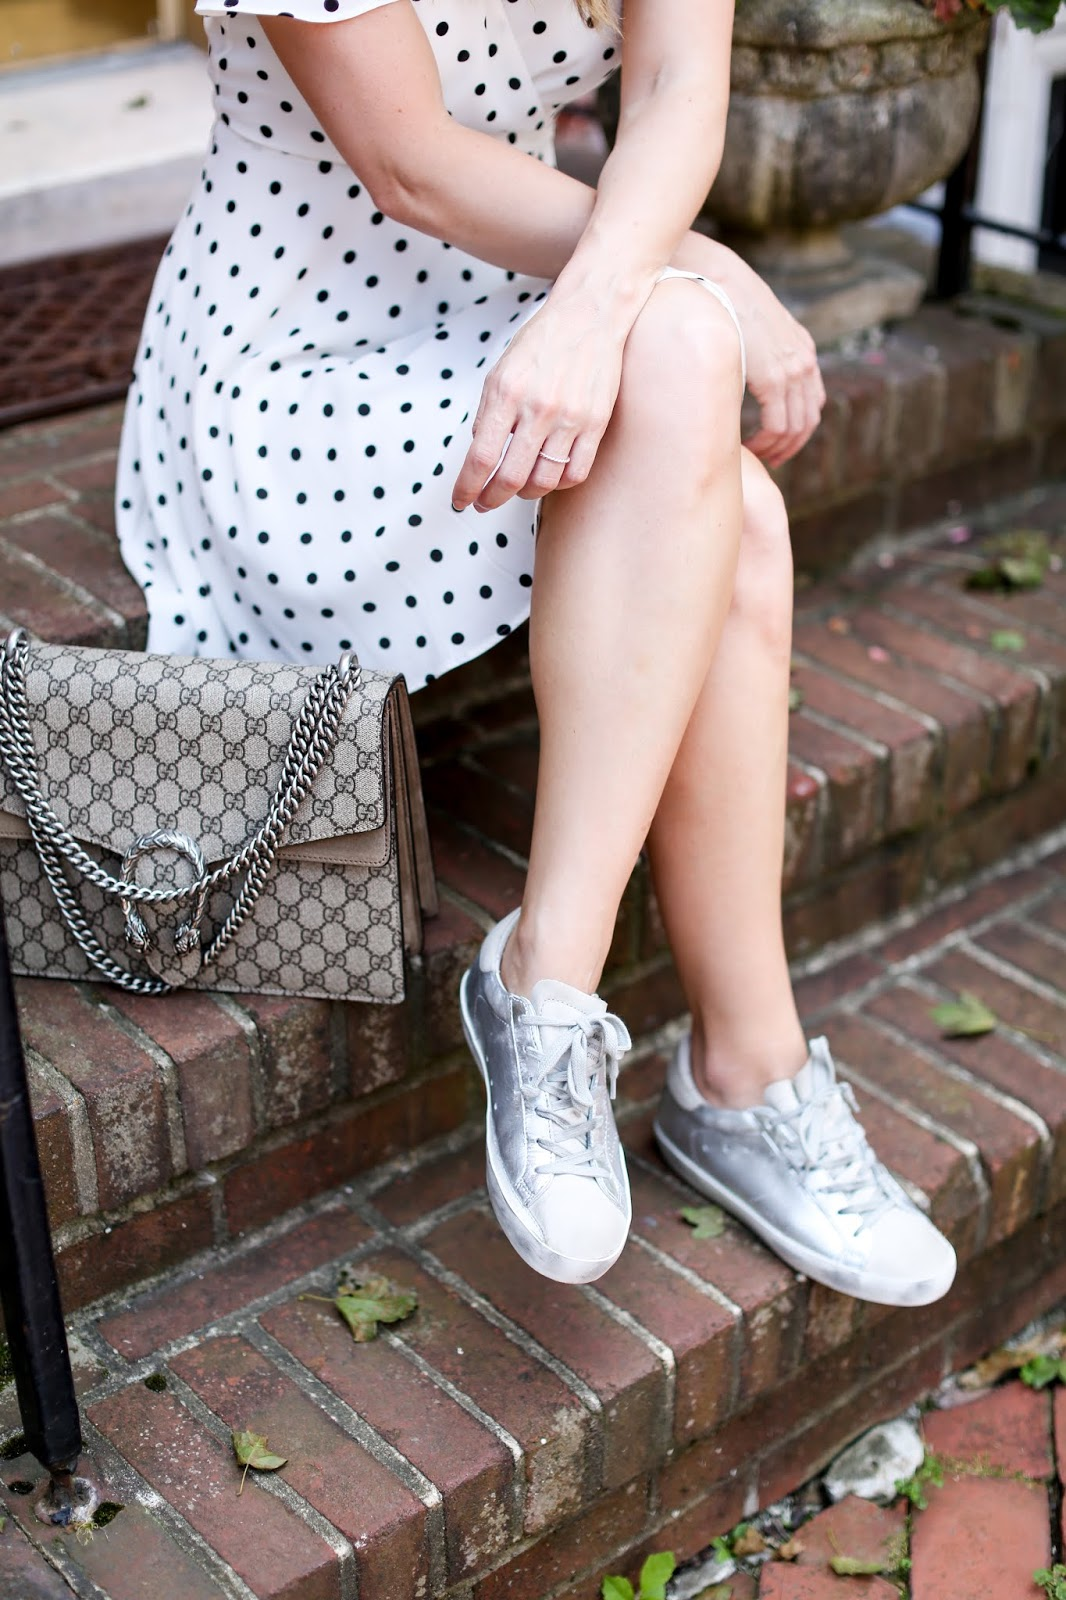 so I threw on my new Golden Goose sneakers that I snagged on super sale (this was the site but they are sold out now) and love how cute the whole ensemble looked! I've talked about my love for Golden Goose sneakers many times (I have two other pairs - see those here and here) not only because the designs and colors are everything